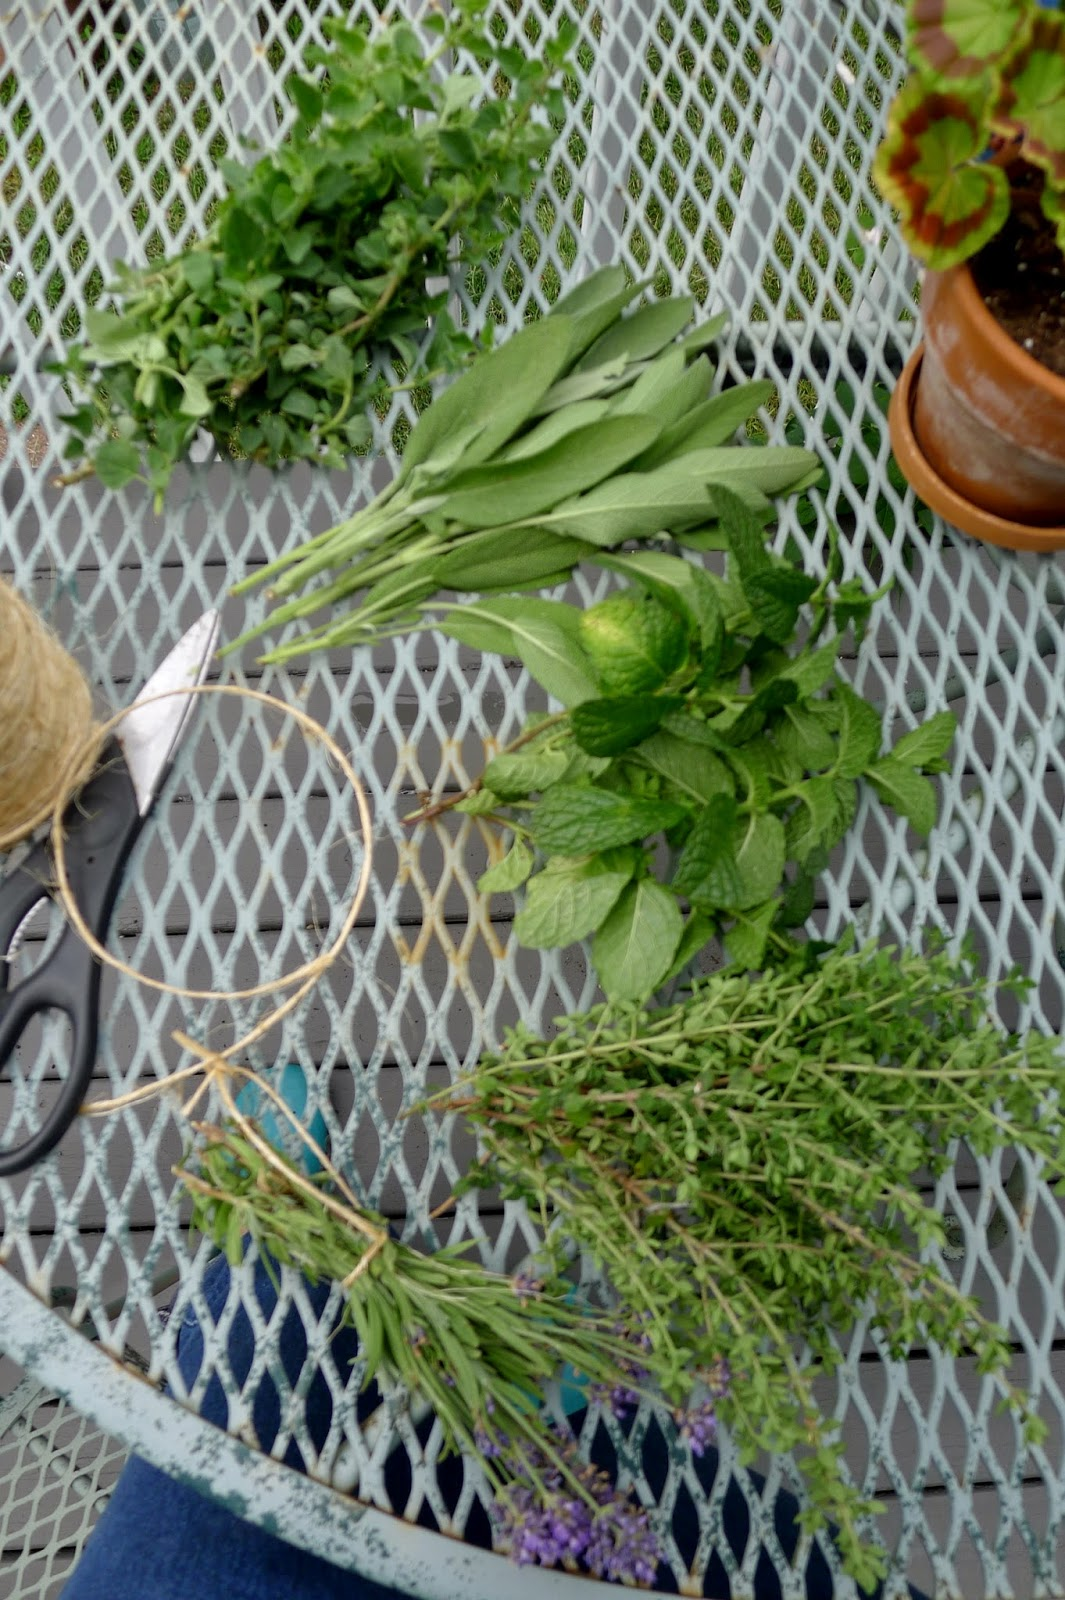 Drying fresh herbs, preserving